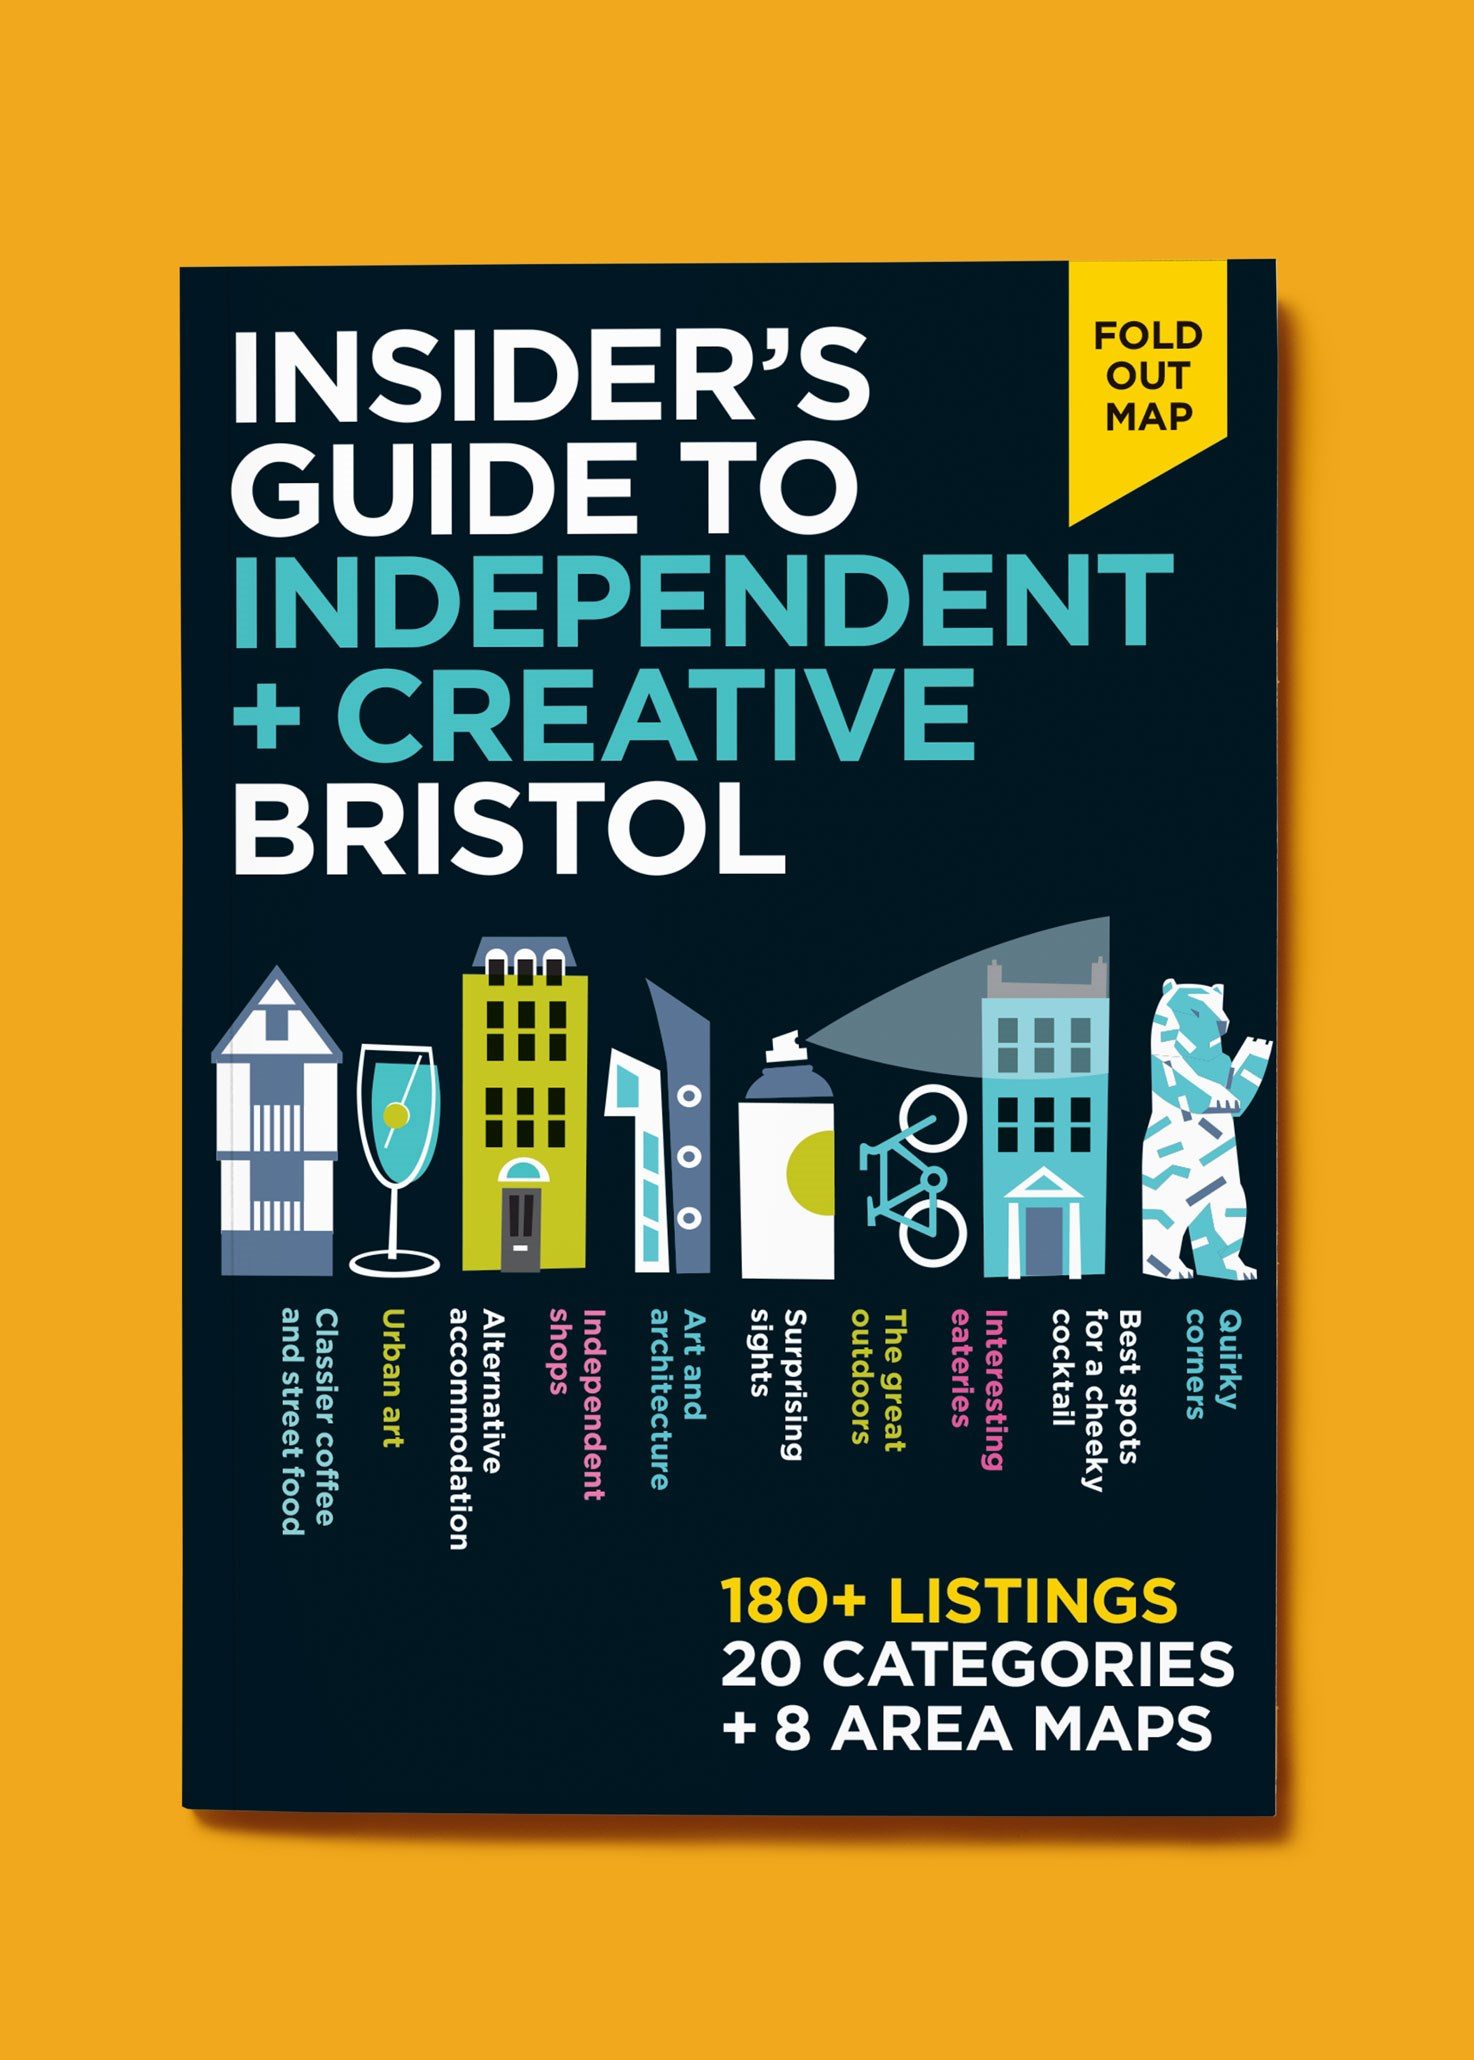 Independent's Guide by Marles + Barclay